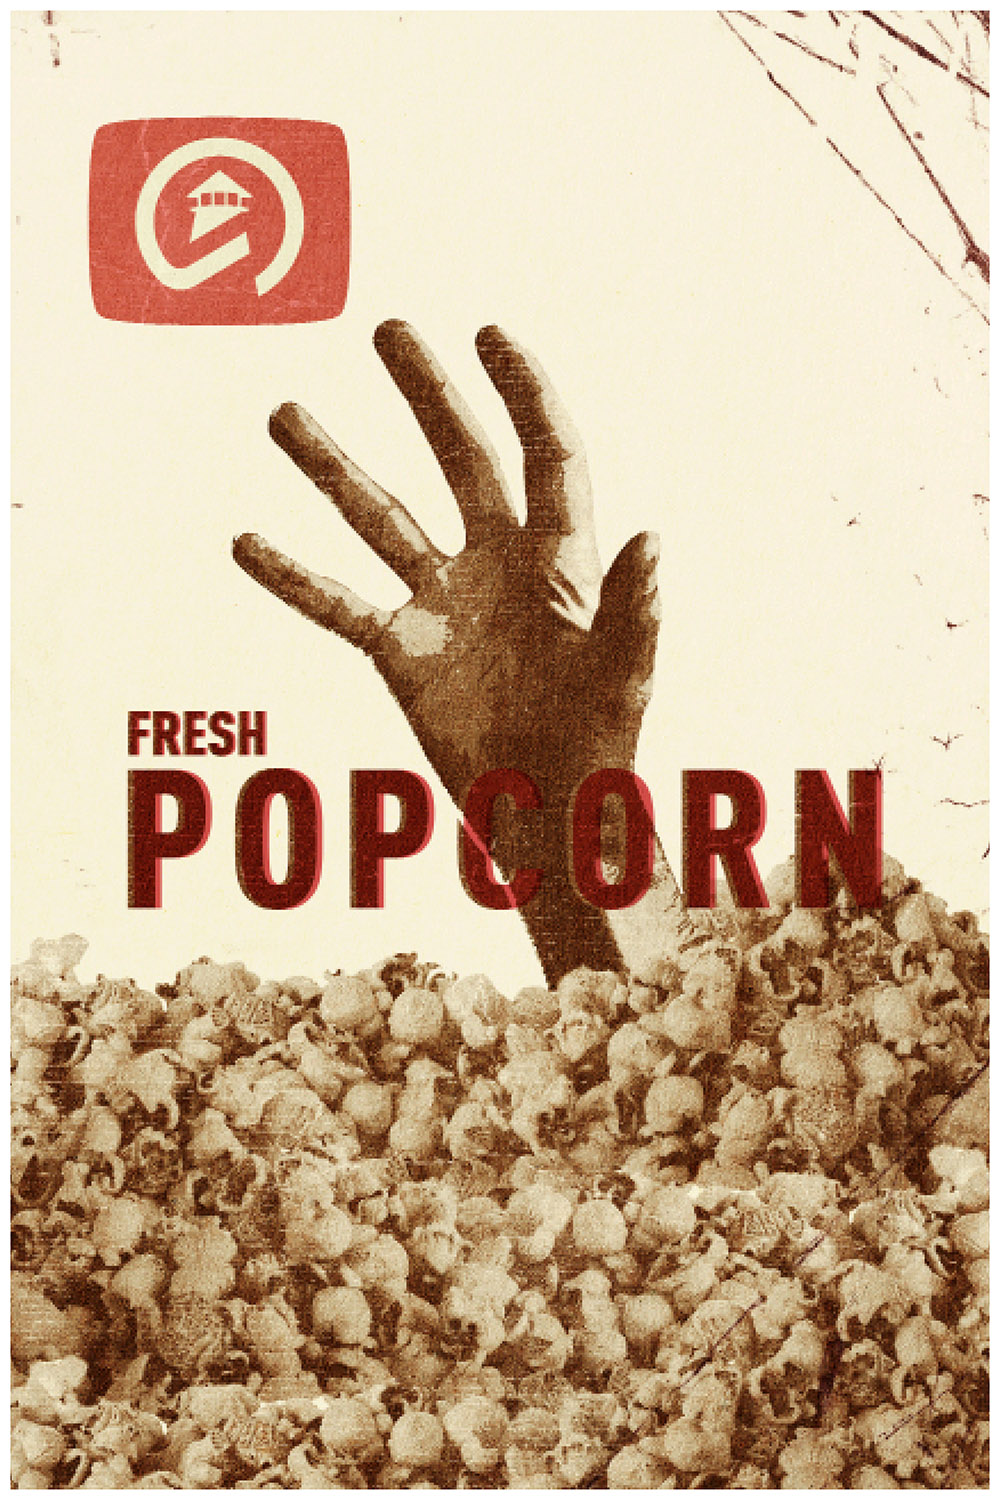 Beacon-EAPA-Popcorn_v1.jpg